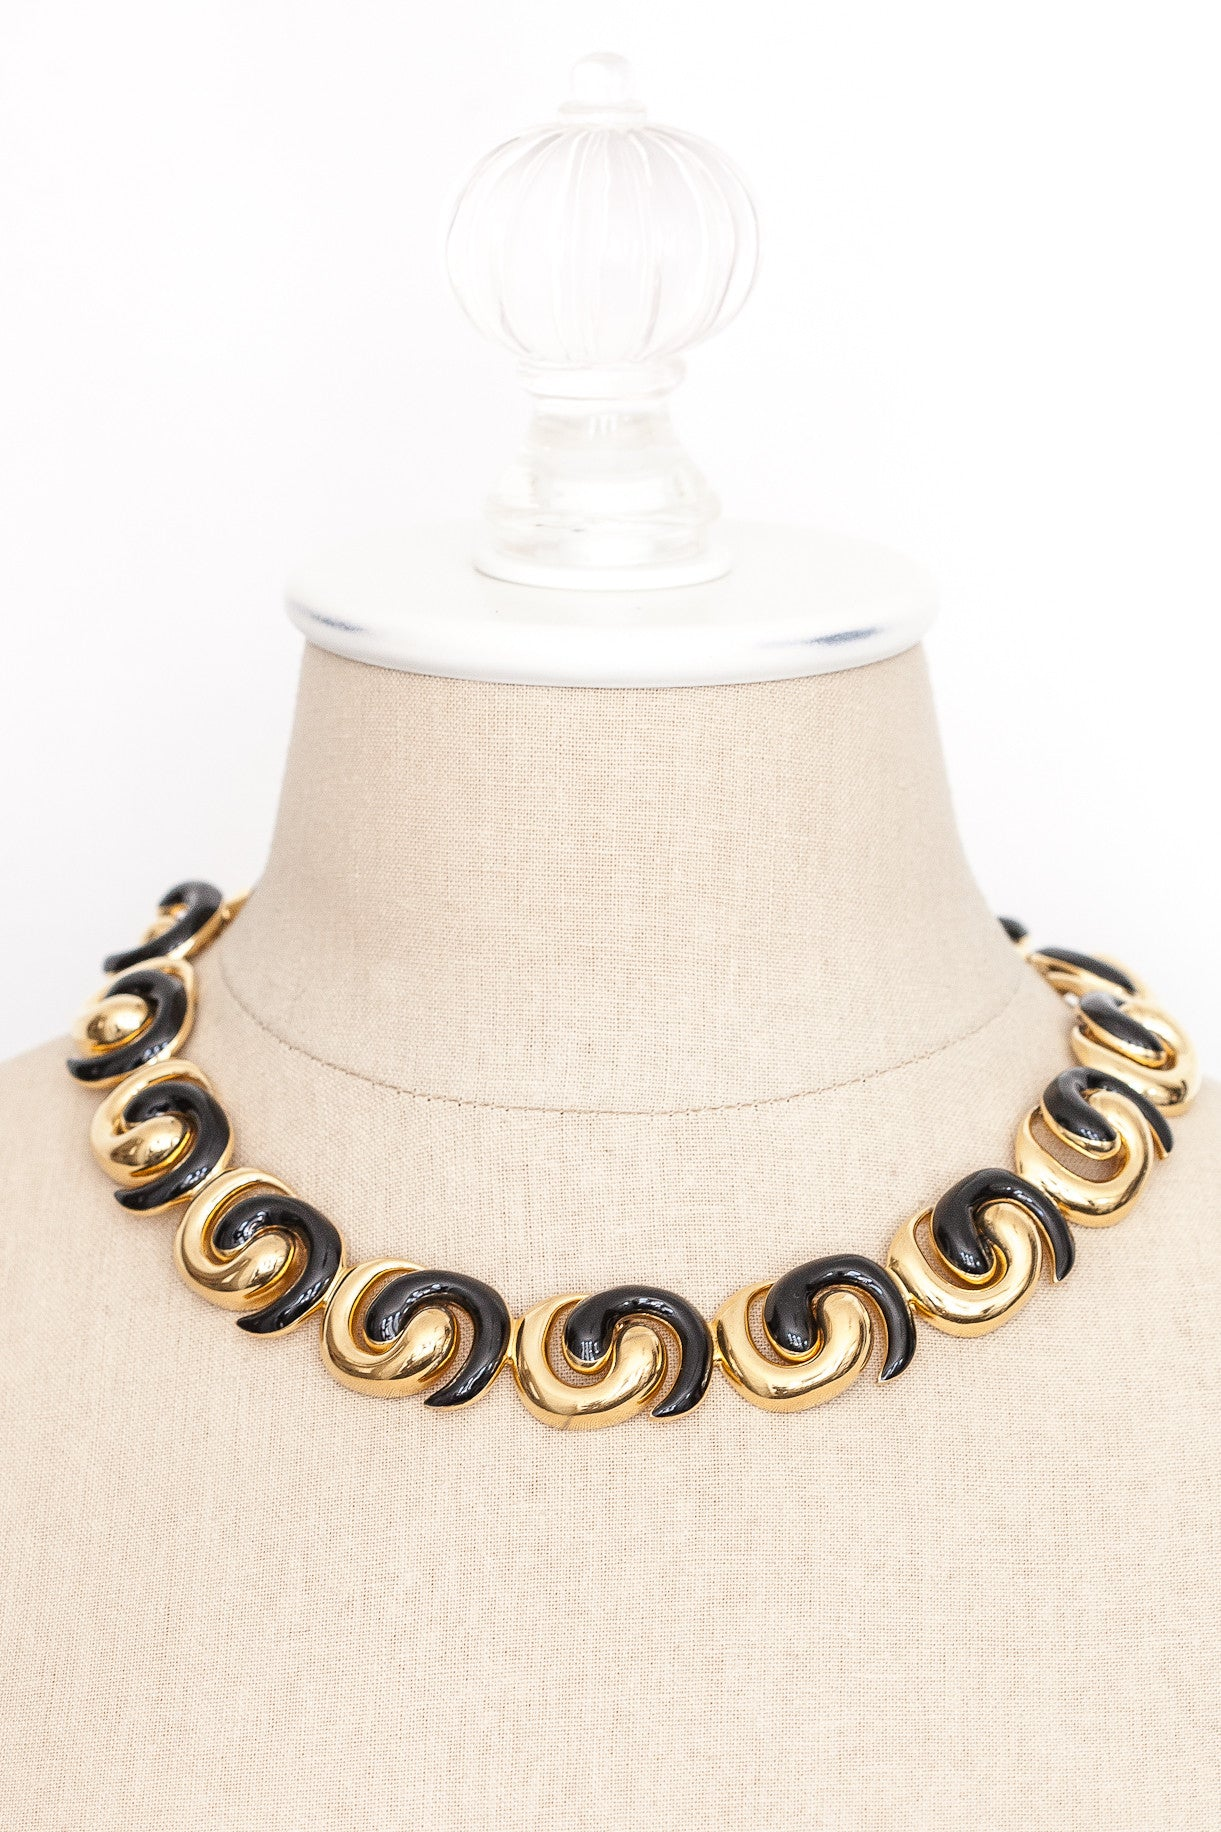 80's__Monet__Chunky Swirl Necklace